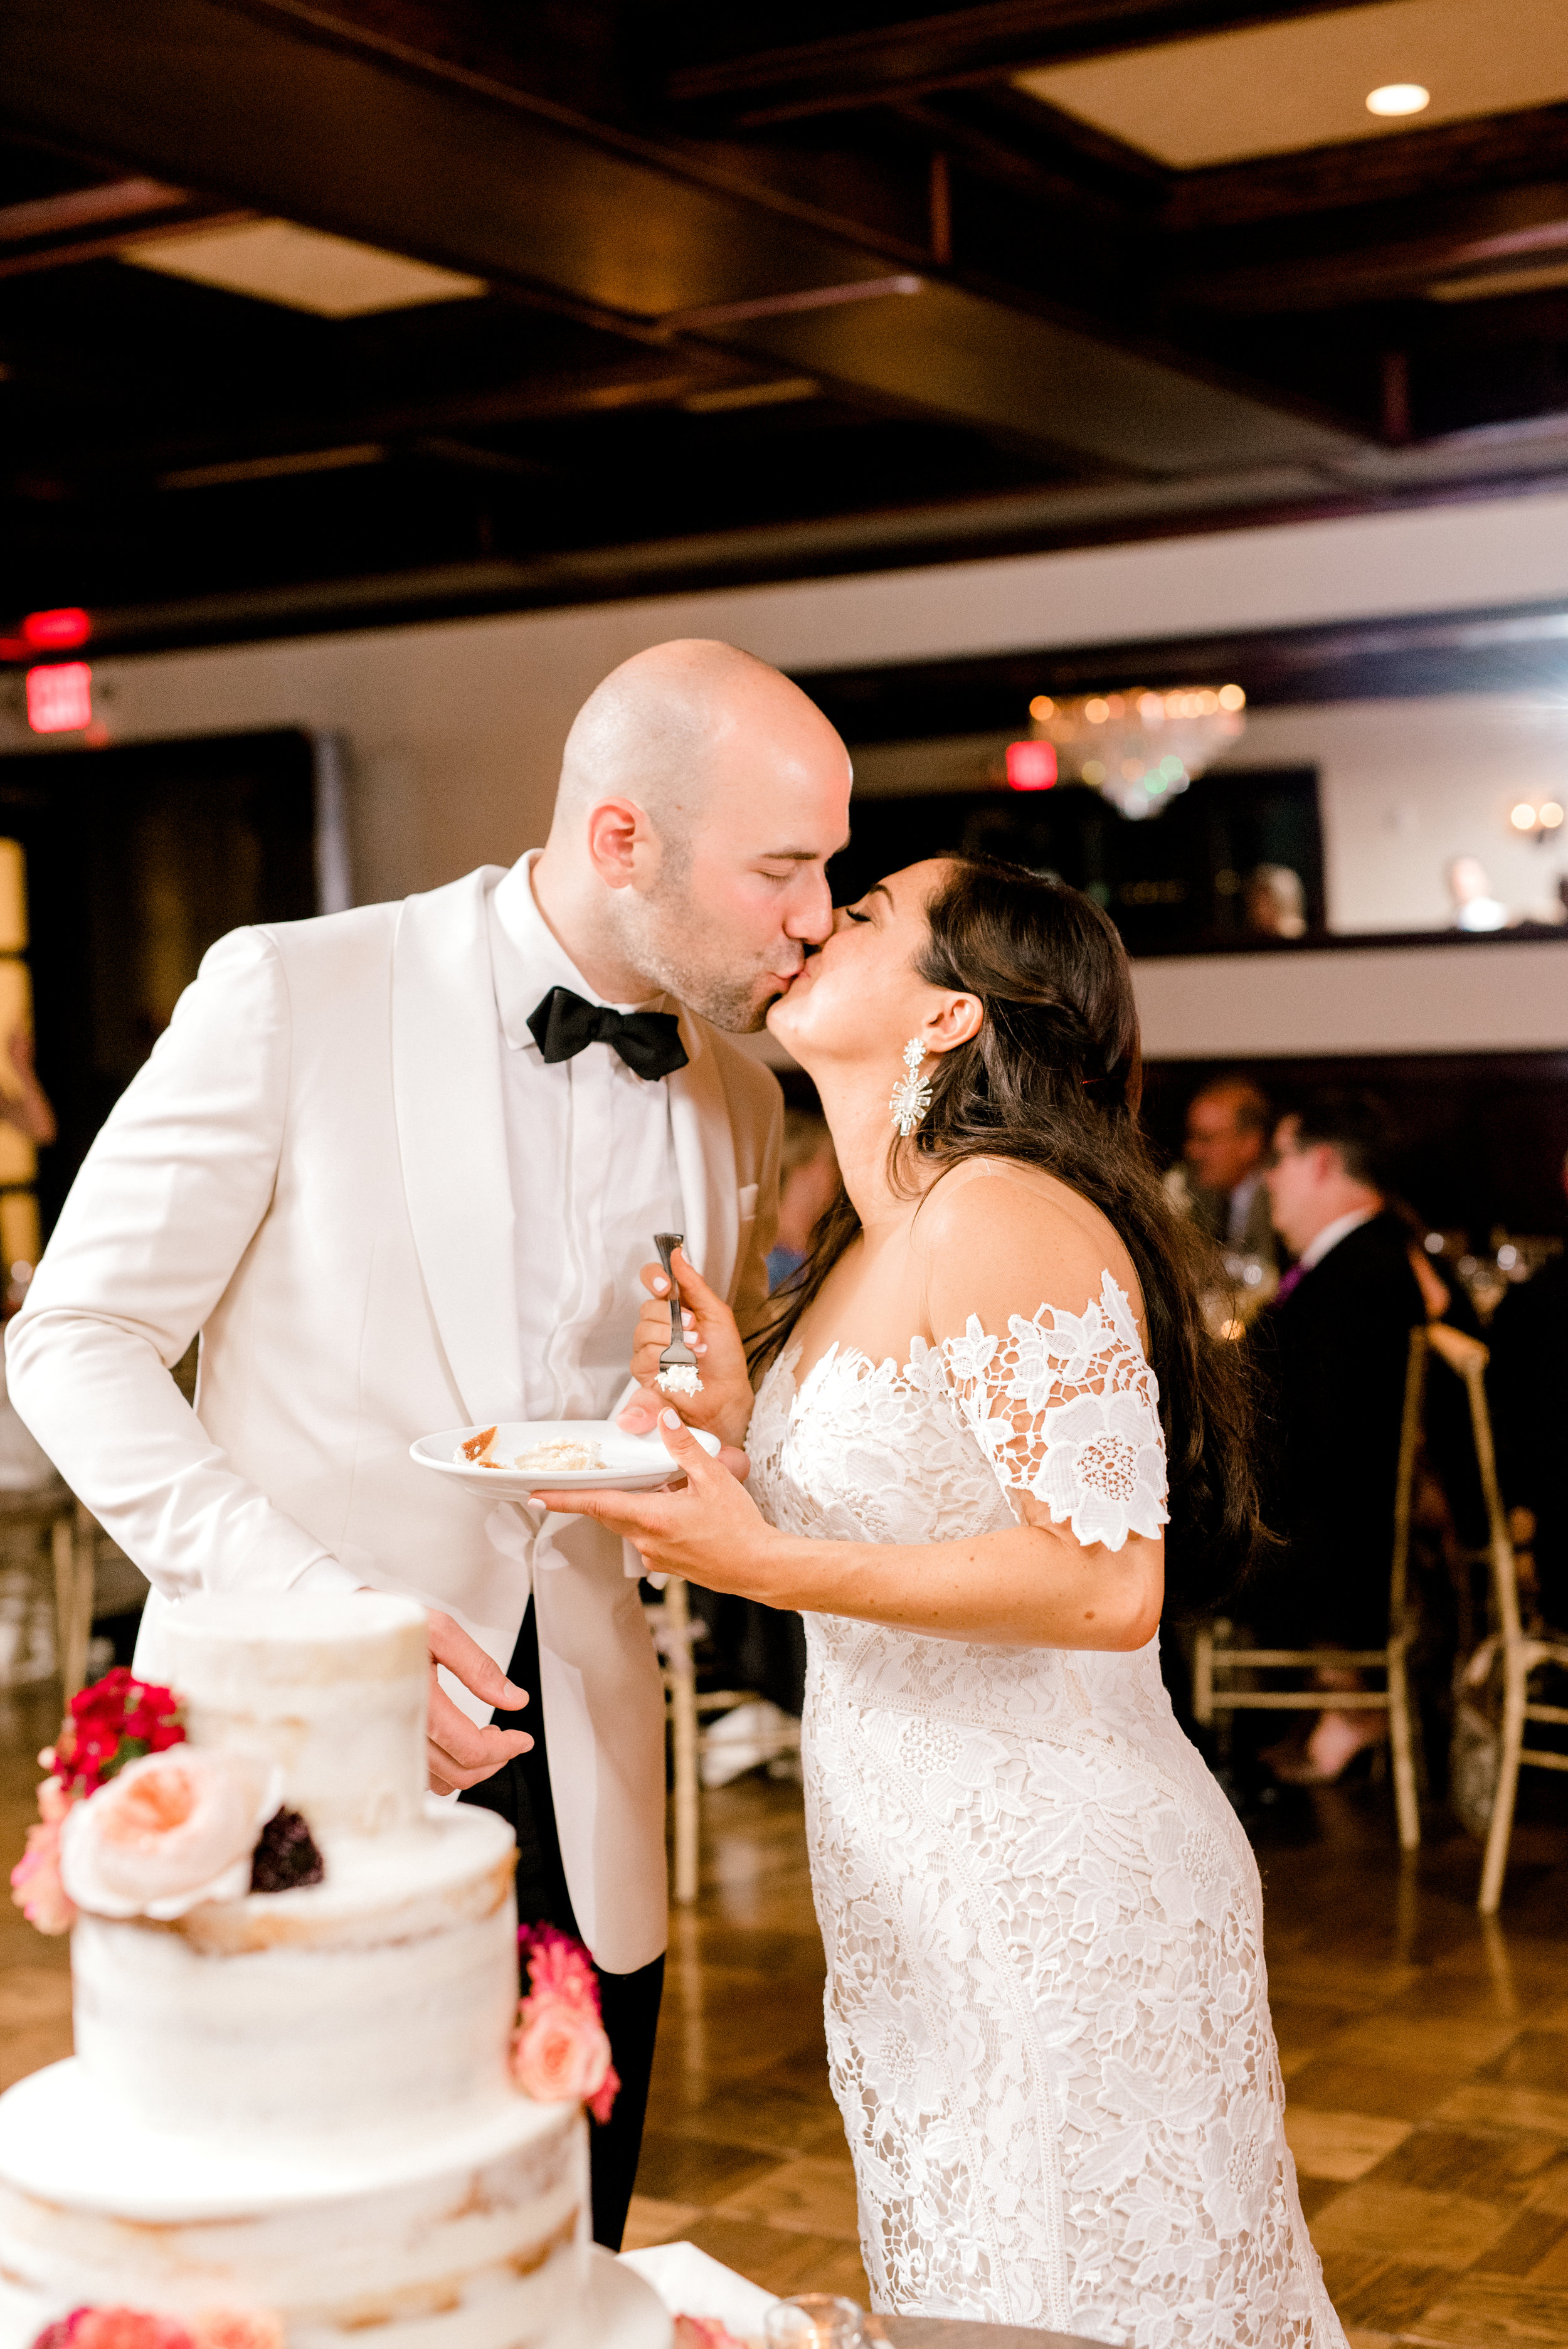 Modern and elegant, these two share a kiss after cutting the cake at their summer Hotel du Village wedding.